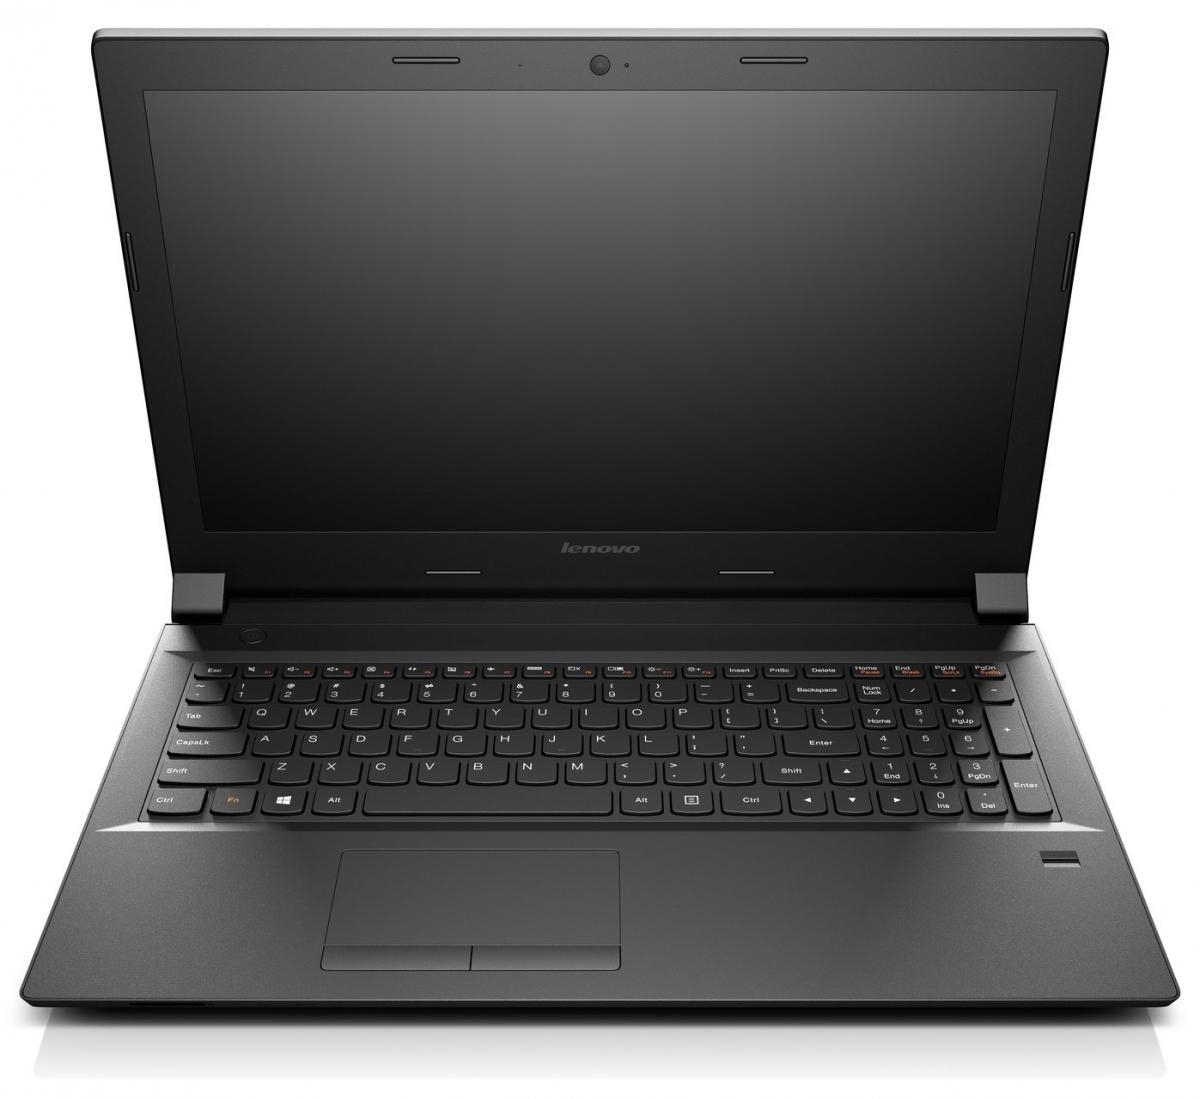 "Lenovo B50-50 15.6"" HD/3215U/1TB/4GB/HD/DVD/F/Win 10 Home (80S2004MCK) 80S2004MCK"